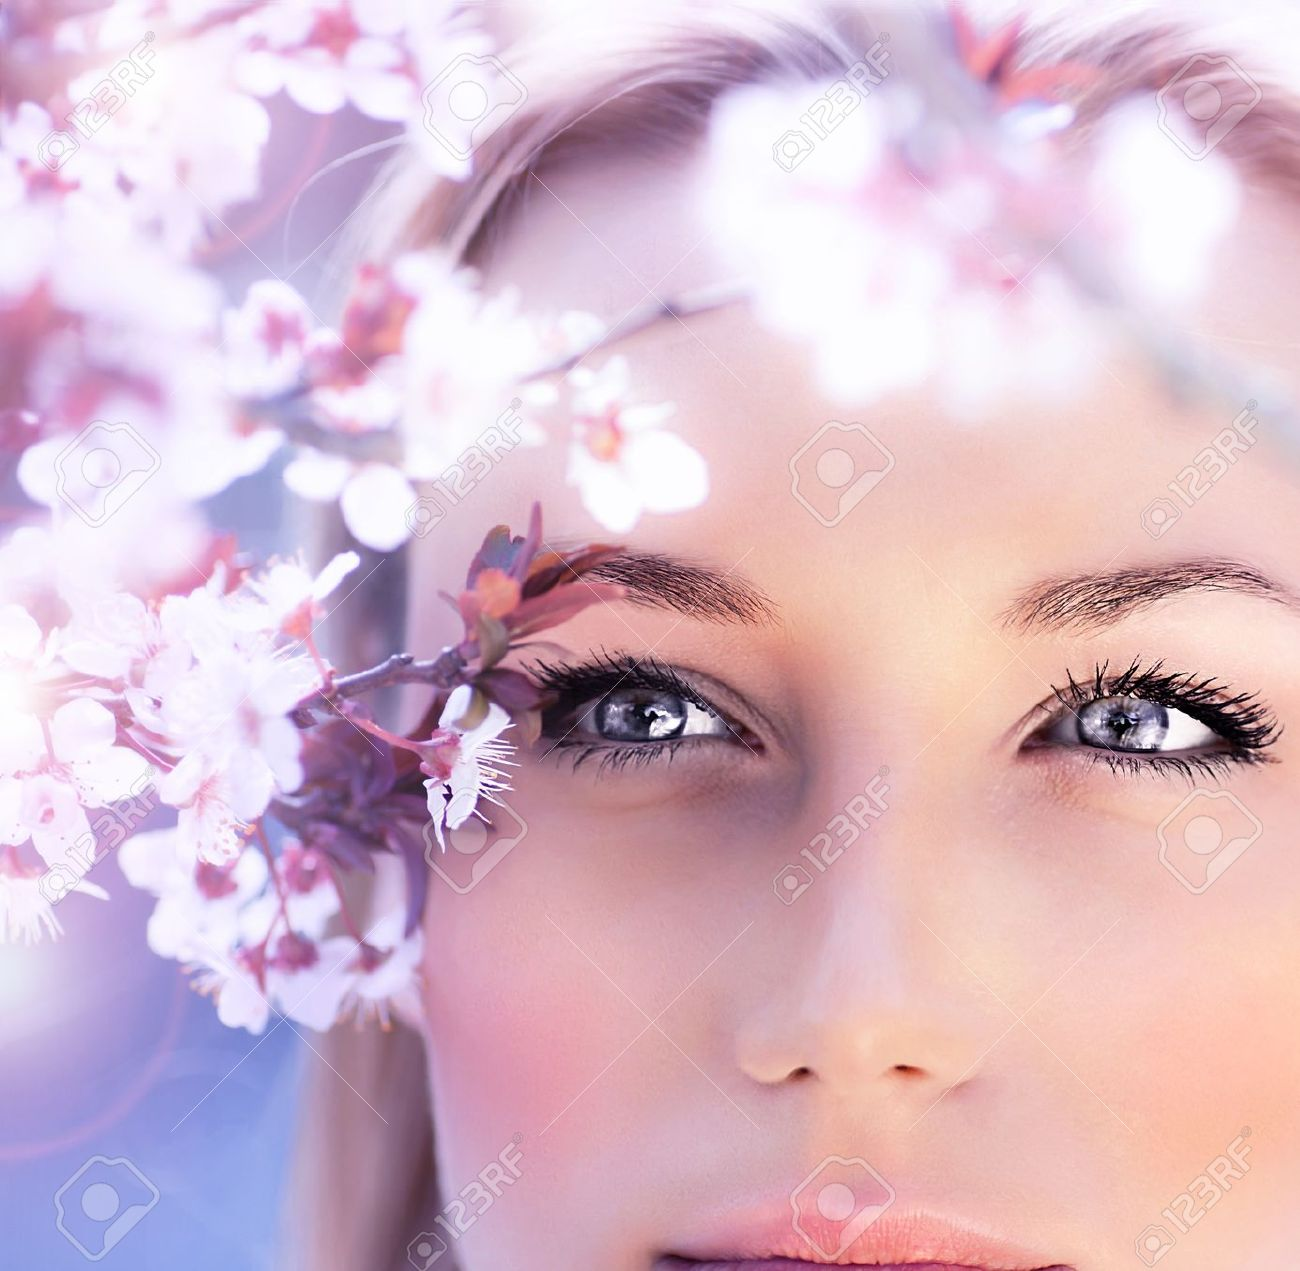 Sensual portrait of a spring woman, beautiful face, close up on blue eyes, female enjoying cherry blossom, dreamy girl with pink fresh flowers outdoor, seasonal nature, tree branch and natural beauty Stock Photo - 12879936